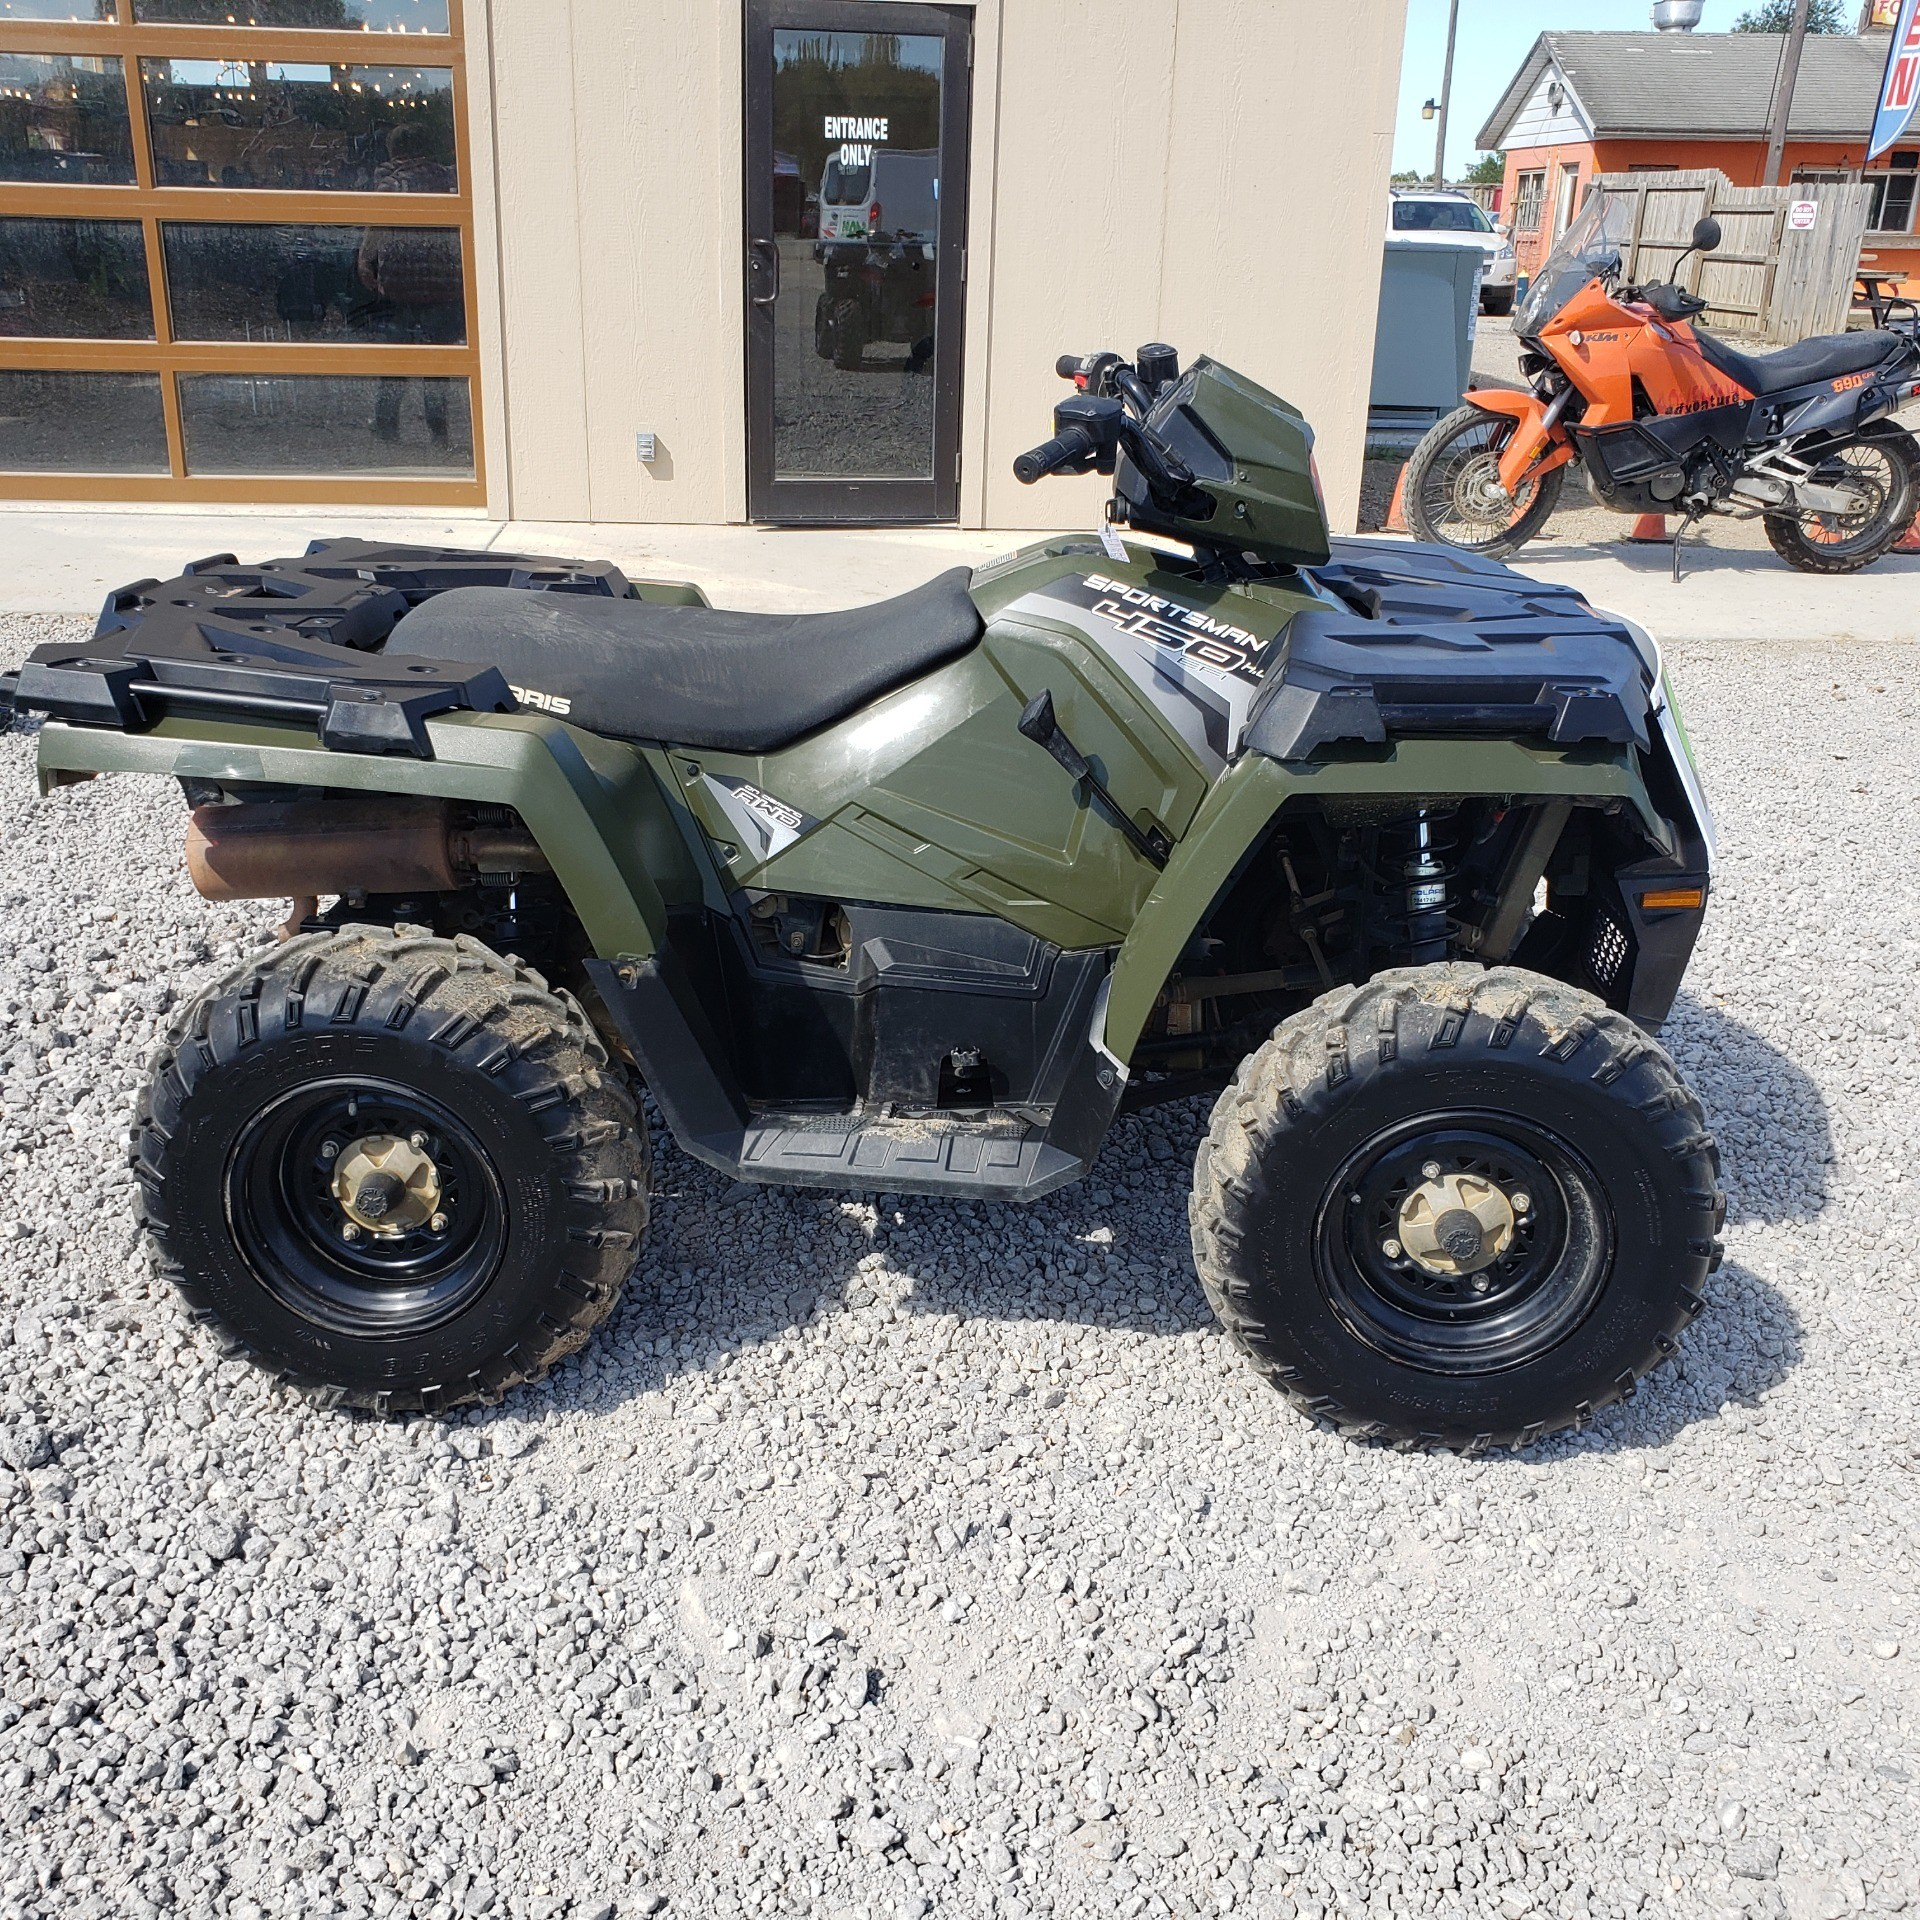 2018 Polaris Sportsman 450 H.O. in Attica, Indiana - Photo 12